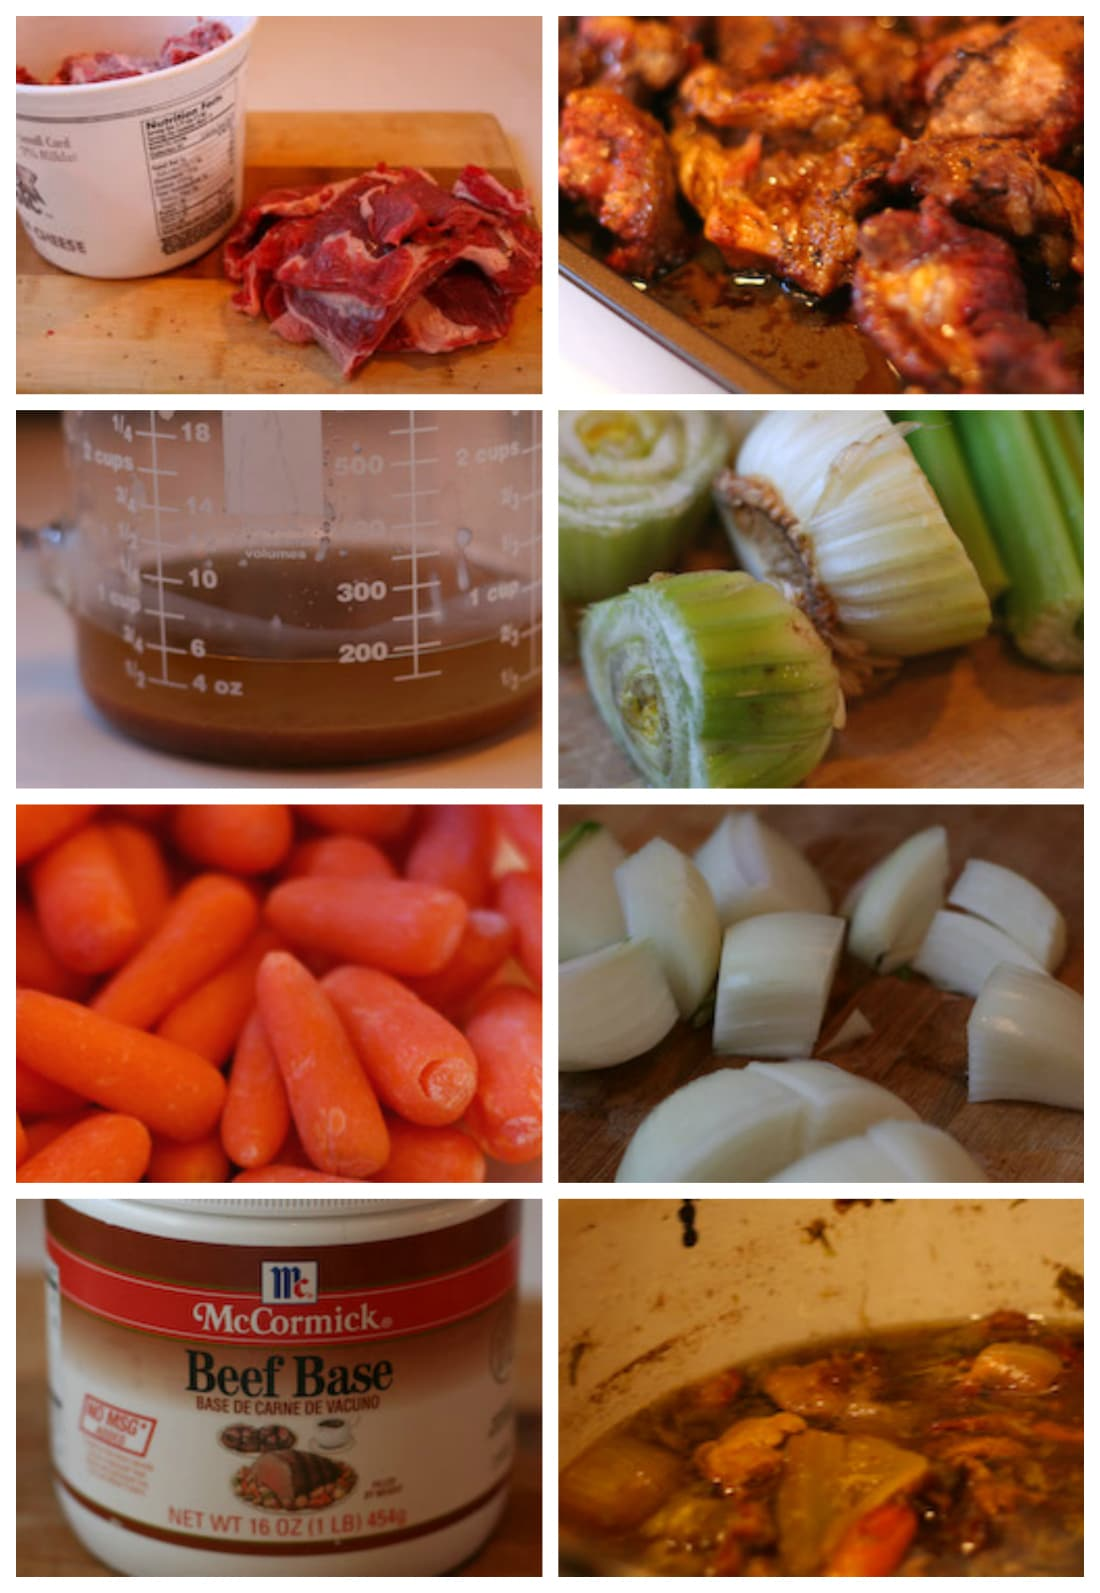 How to Make Beef Stock - Starting the Stock